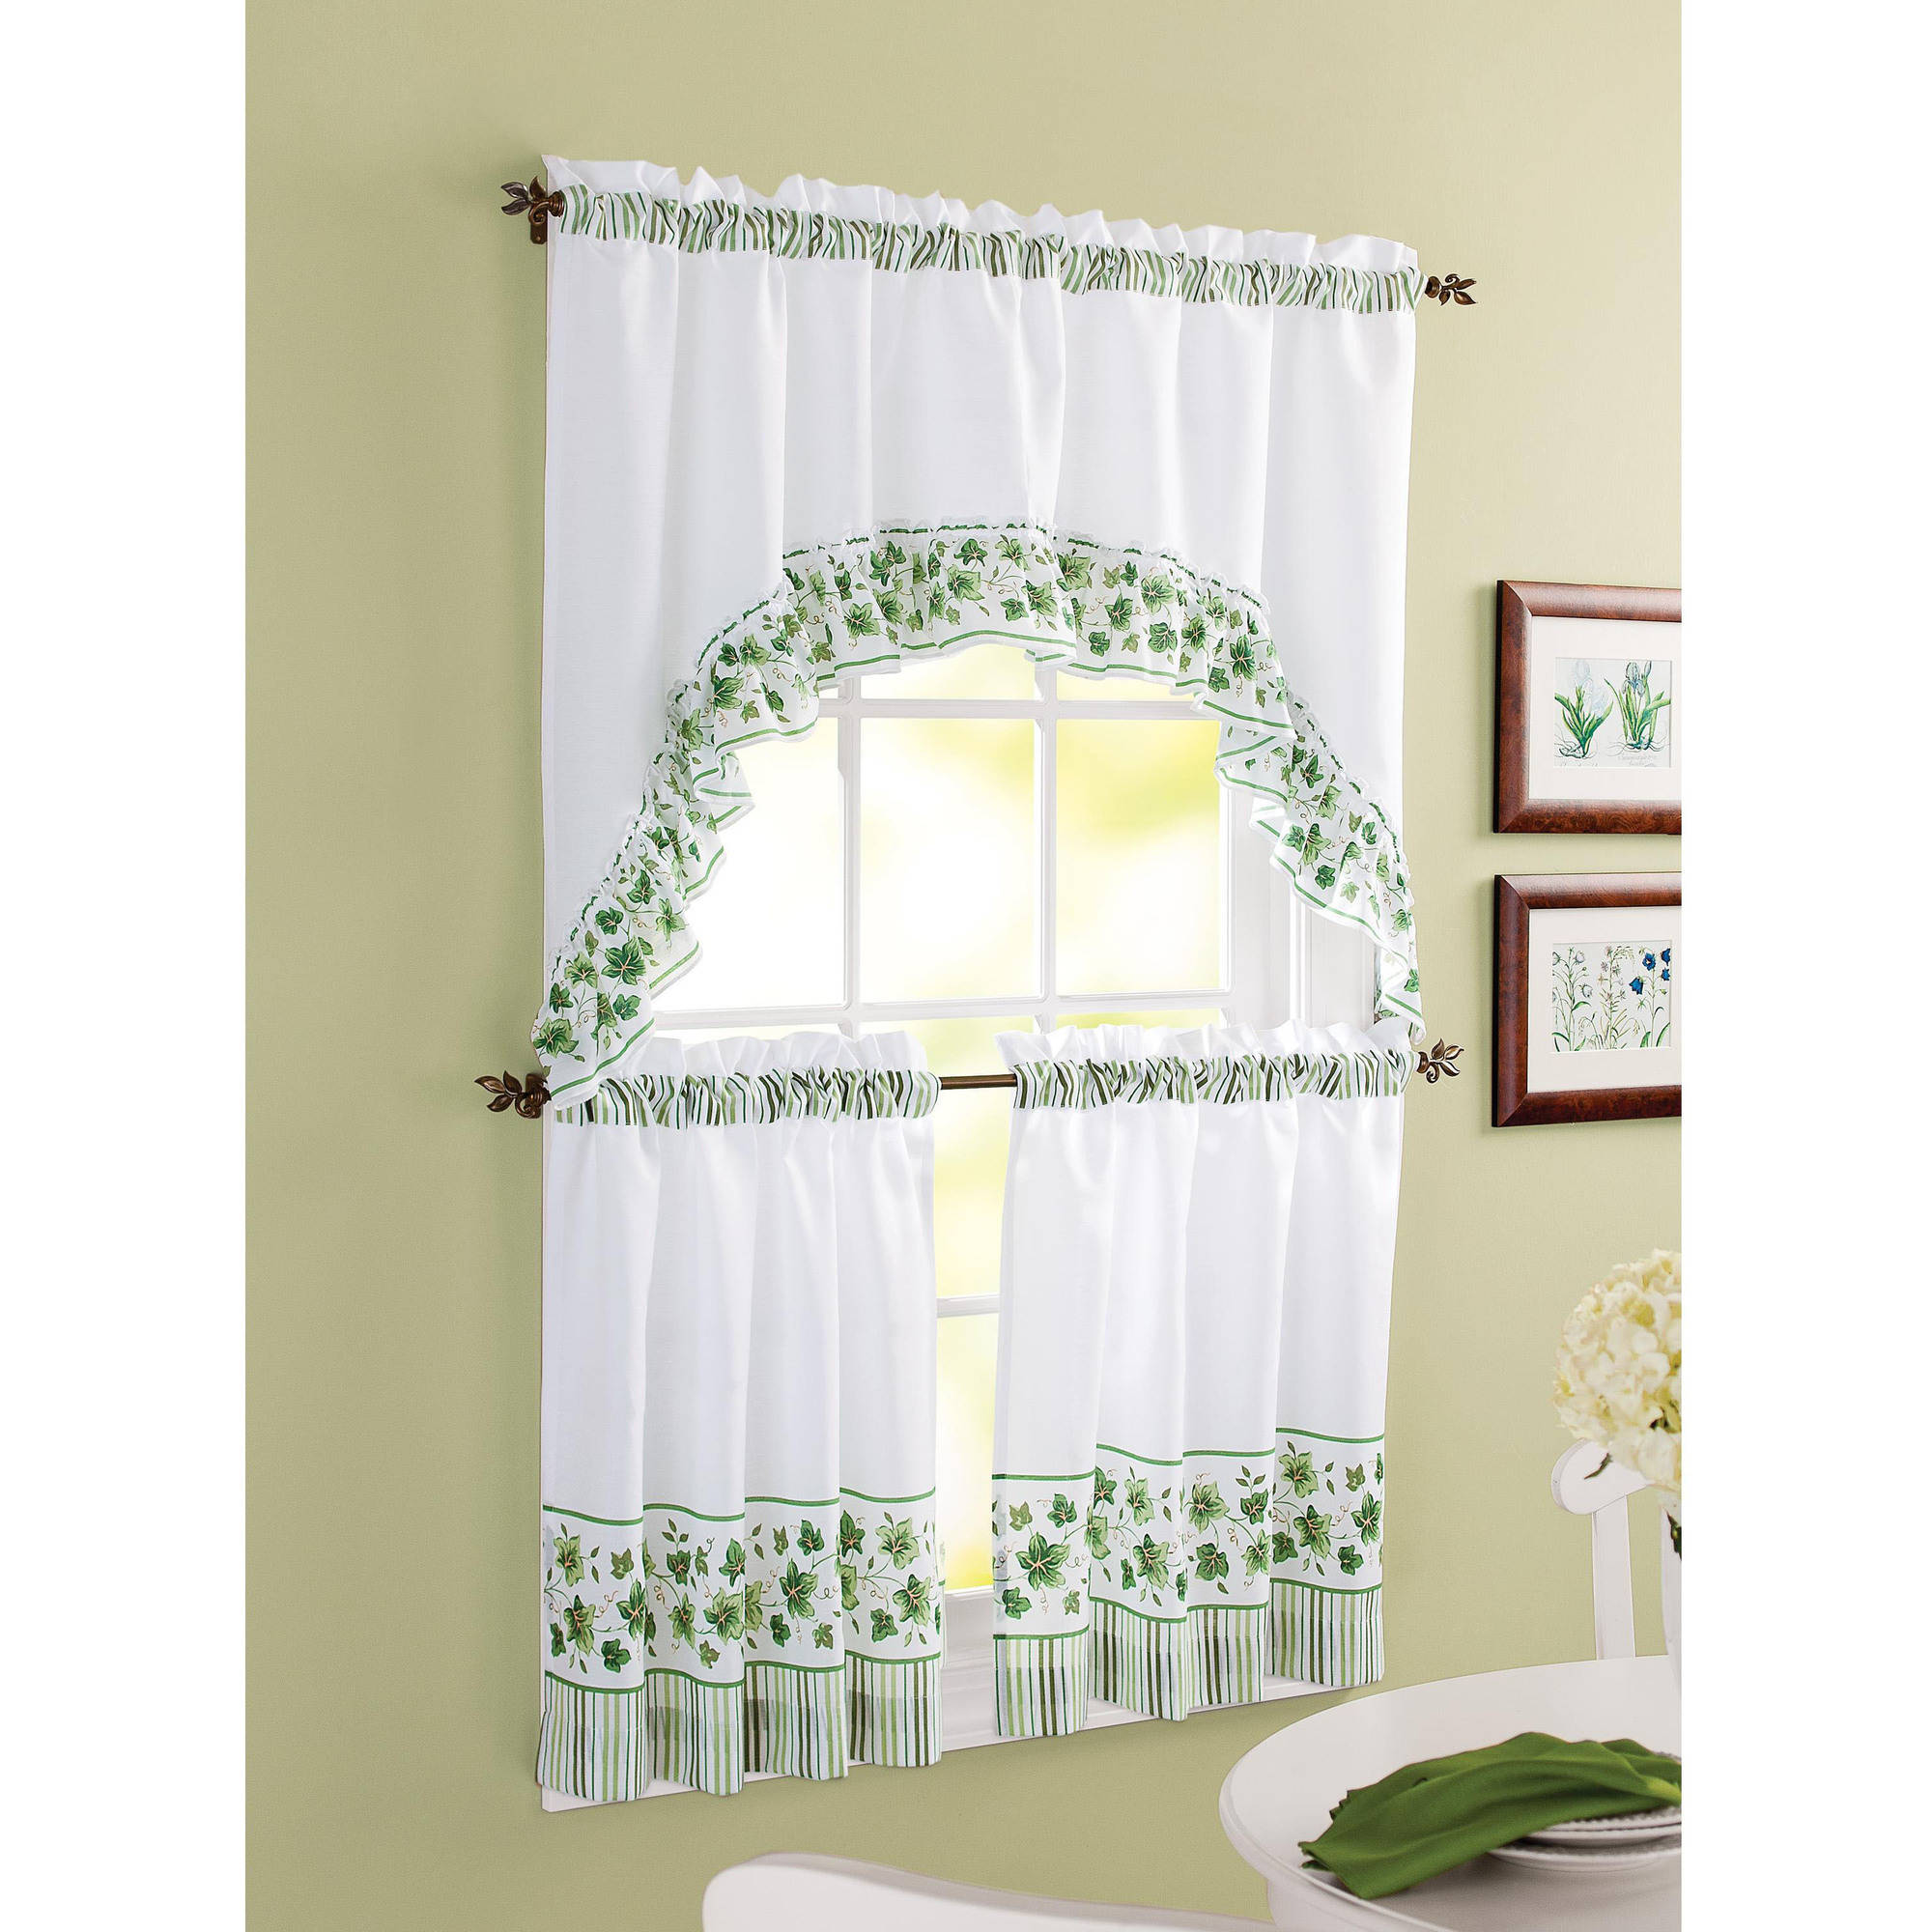 Better Homes And Gardens Ivy Kitchen Curtain Set. Write A Review